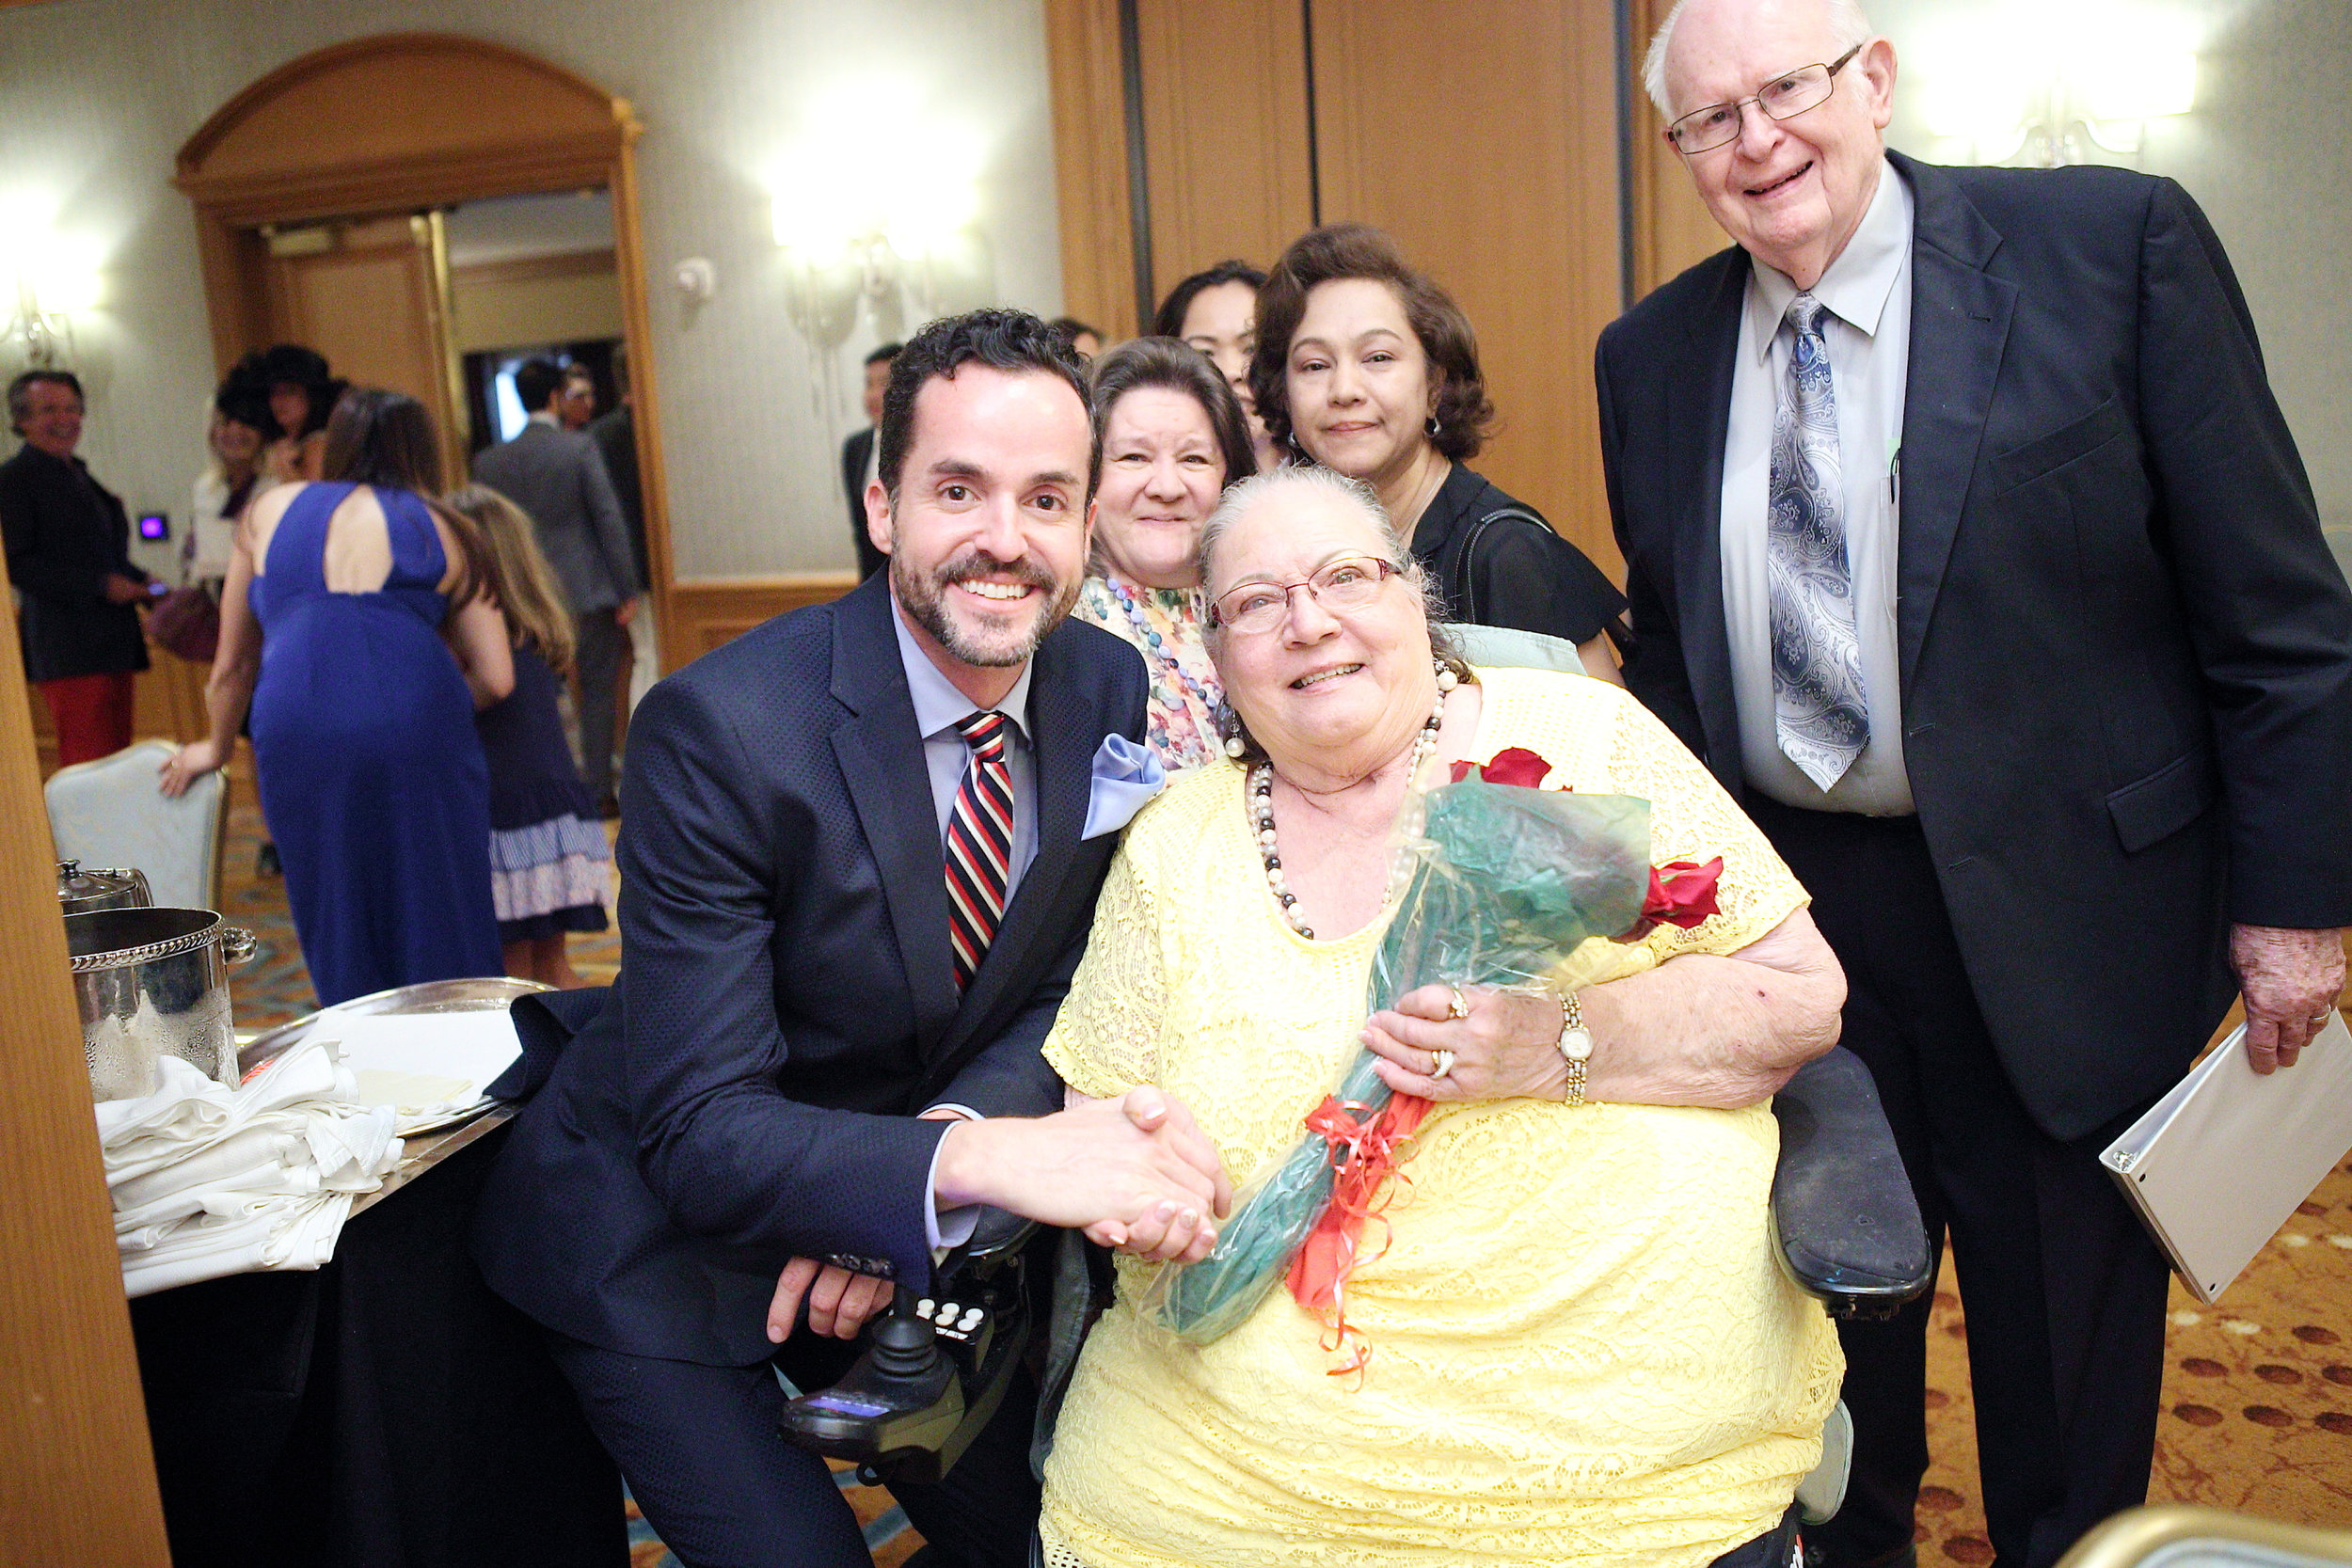 Connie Warner  (1933-May 4,2018) - guest speaker at our 2017 Inaugural Jazz Luncheon at the St. Regis Hotel. Connie was a bilateral amputee who declared her right to be a part of a future senior playground